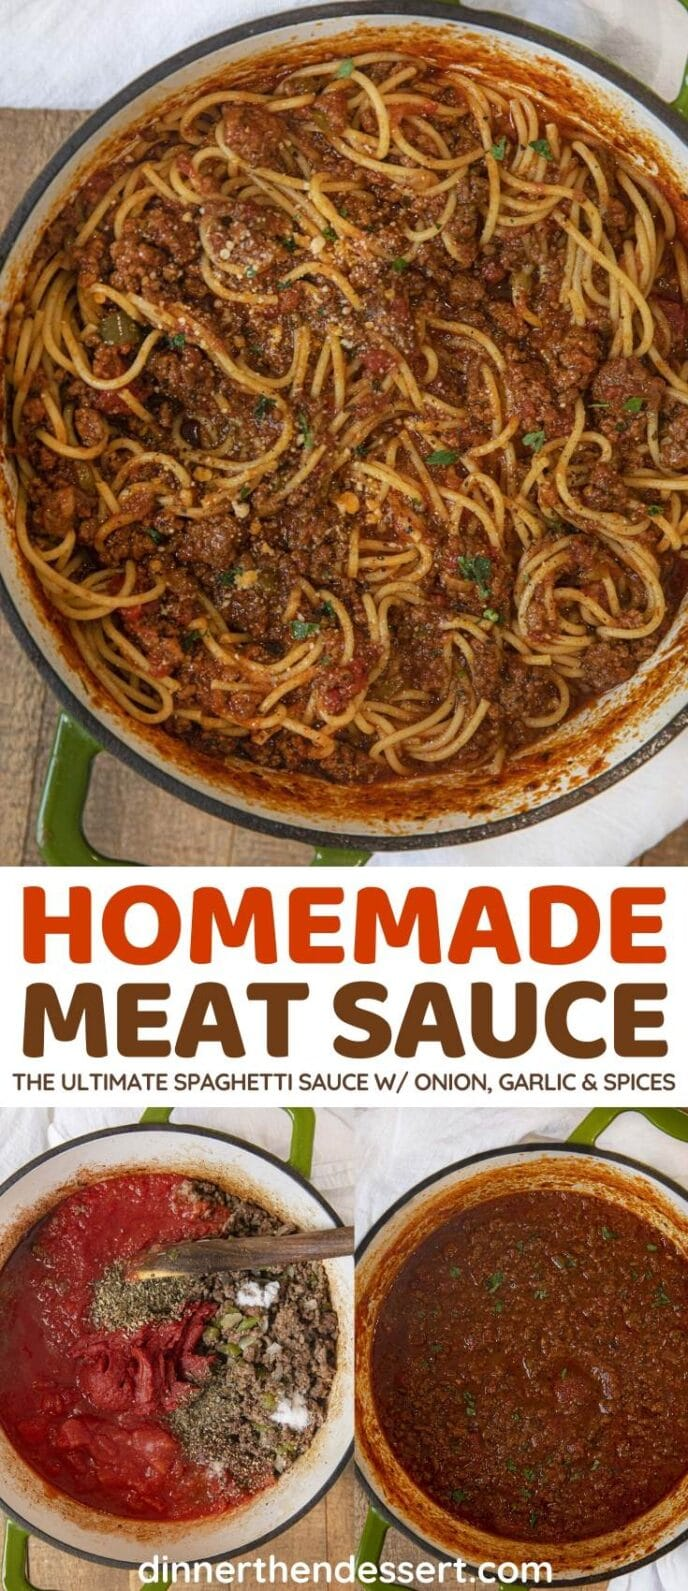 Homemade Meat Sauce collage